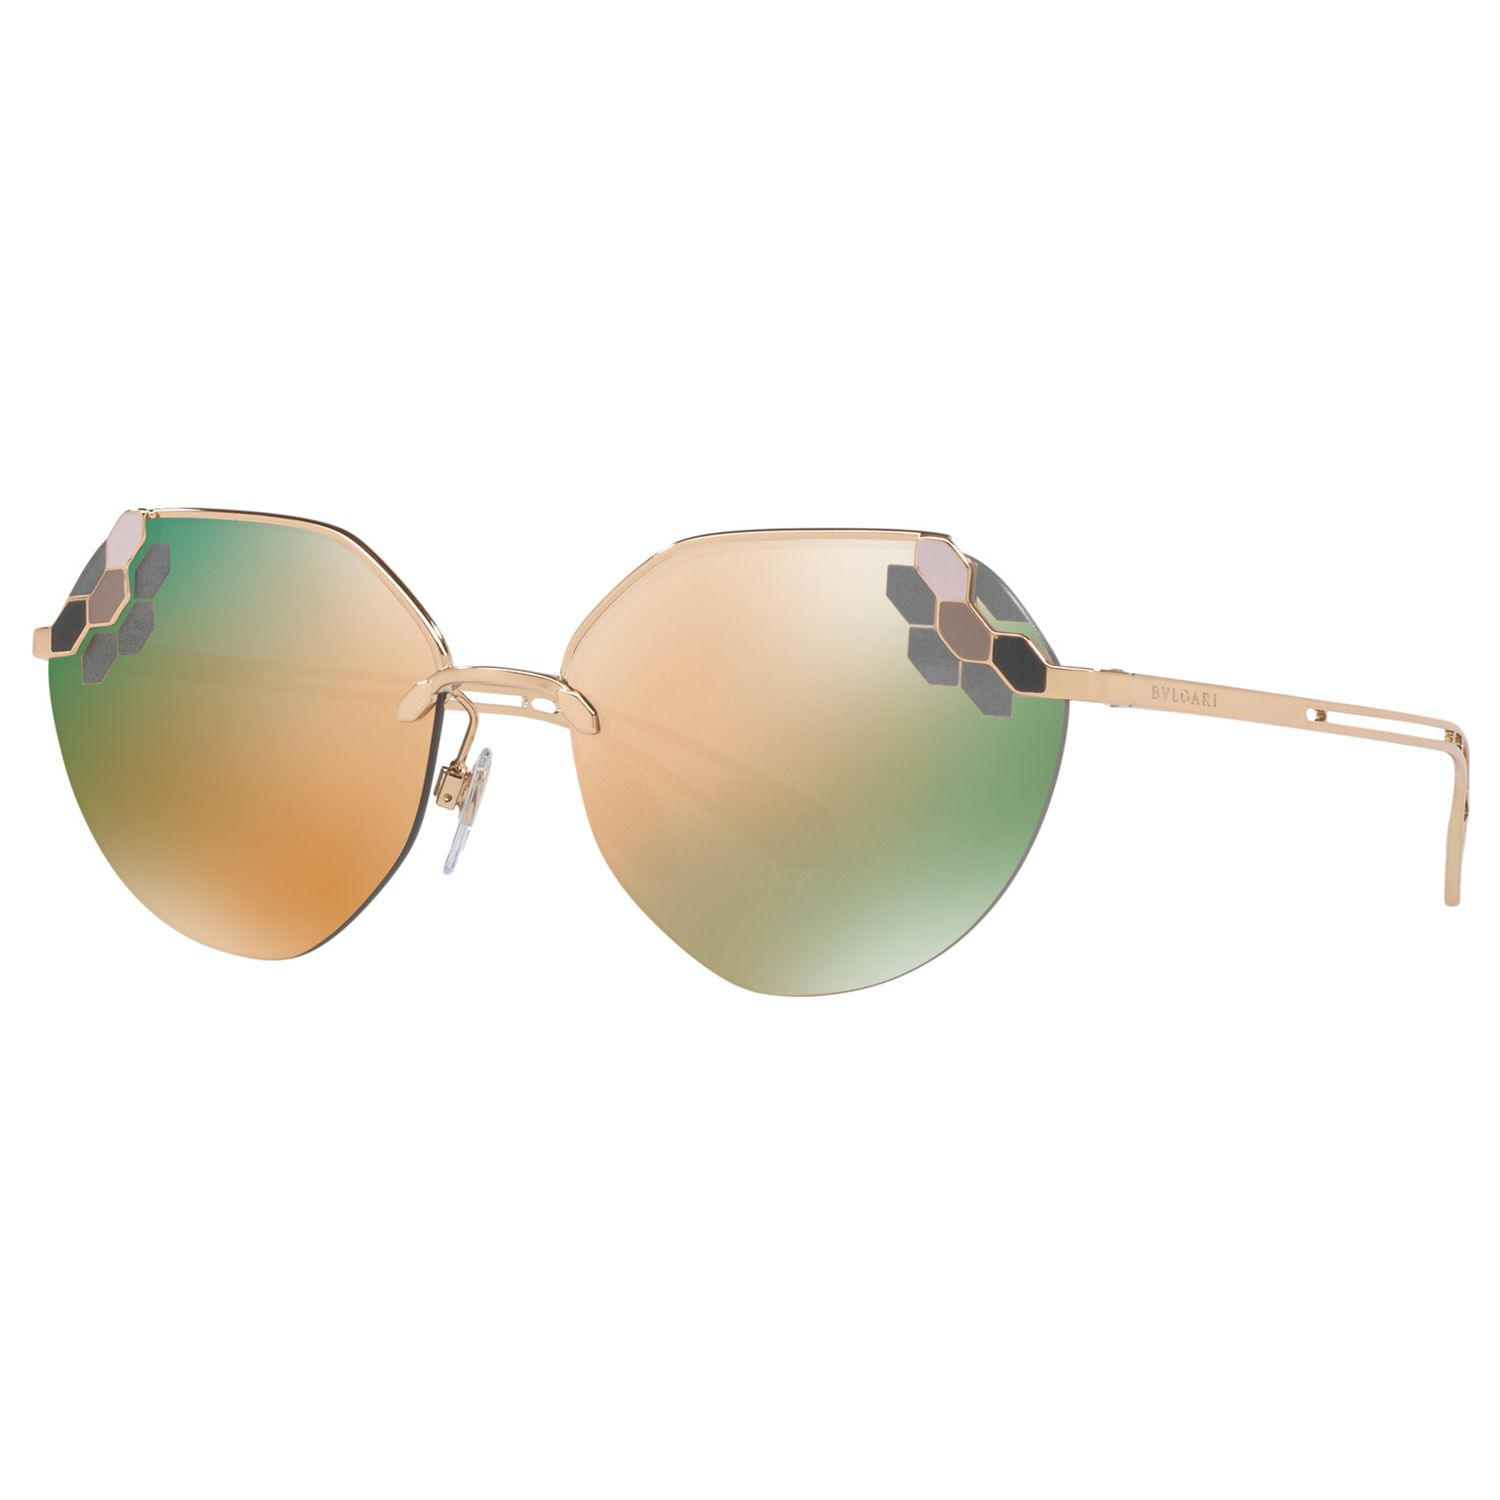 Bvlgari BVLGARI BV6099 Women's Aviator Sunglasses, Gold/Mirror Brown